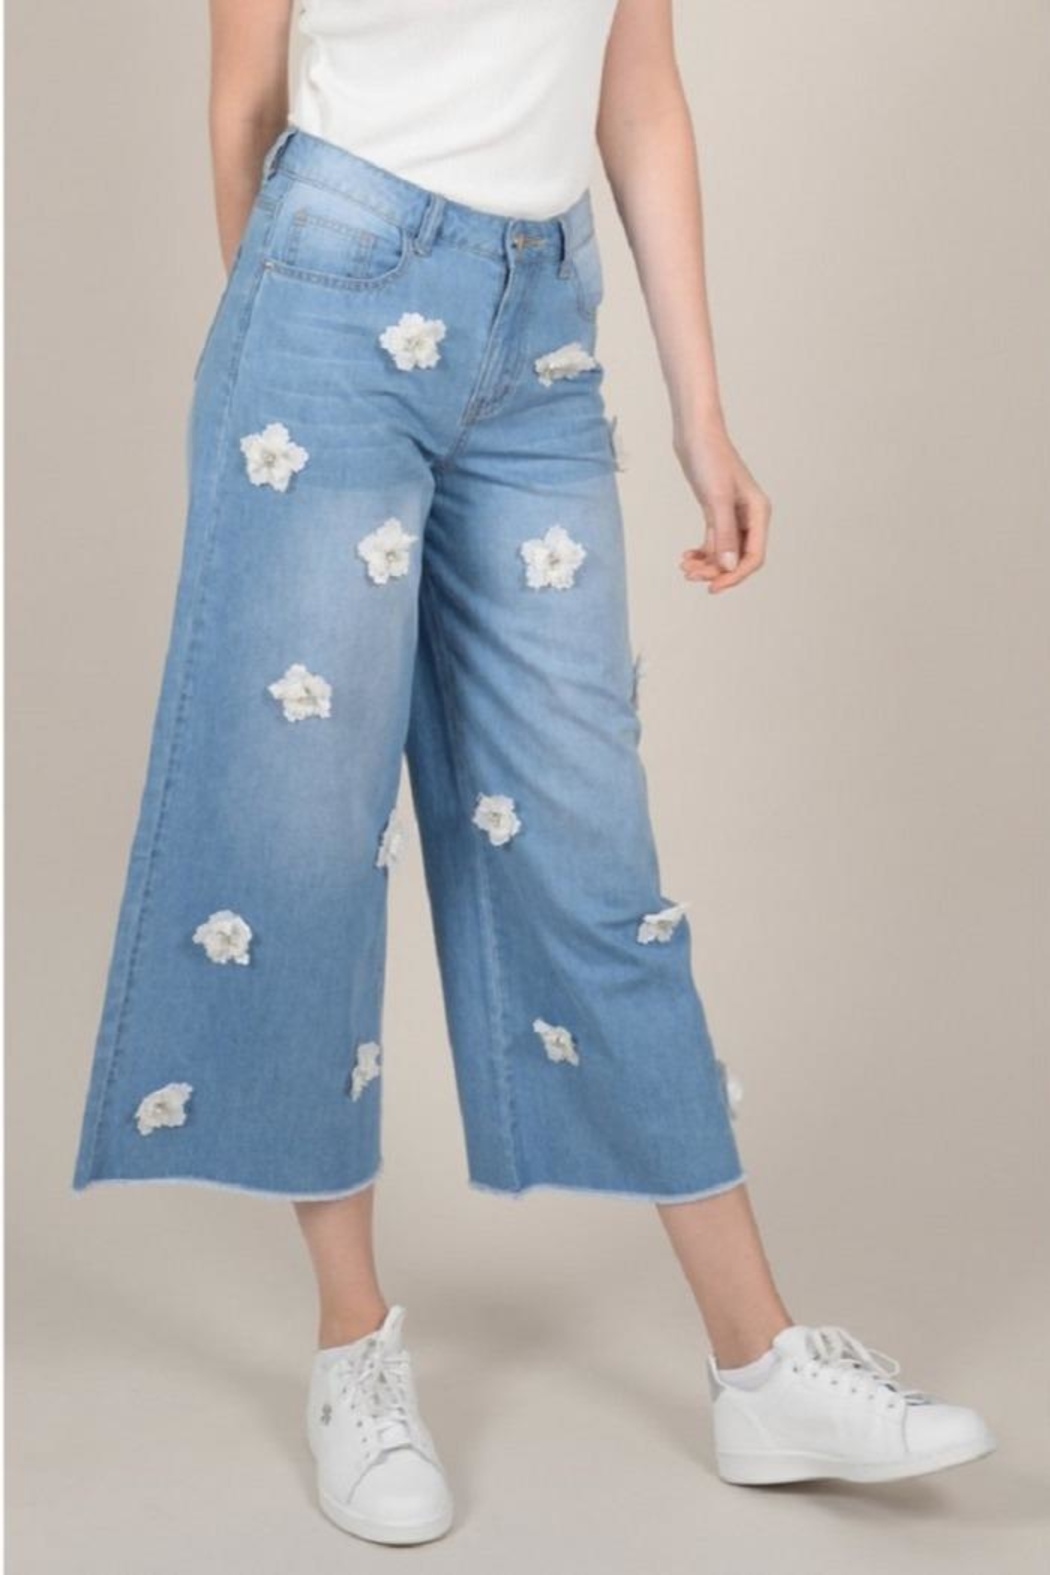 Molly Bracken Flower Cropped Jeans - Main Image